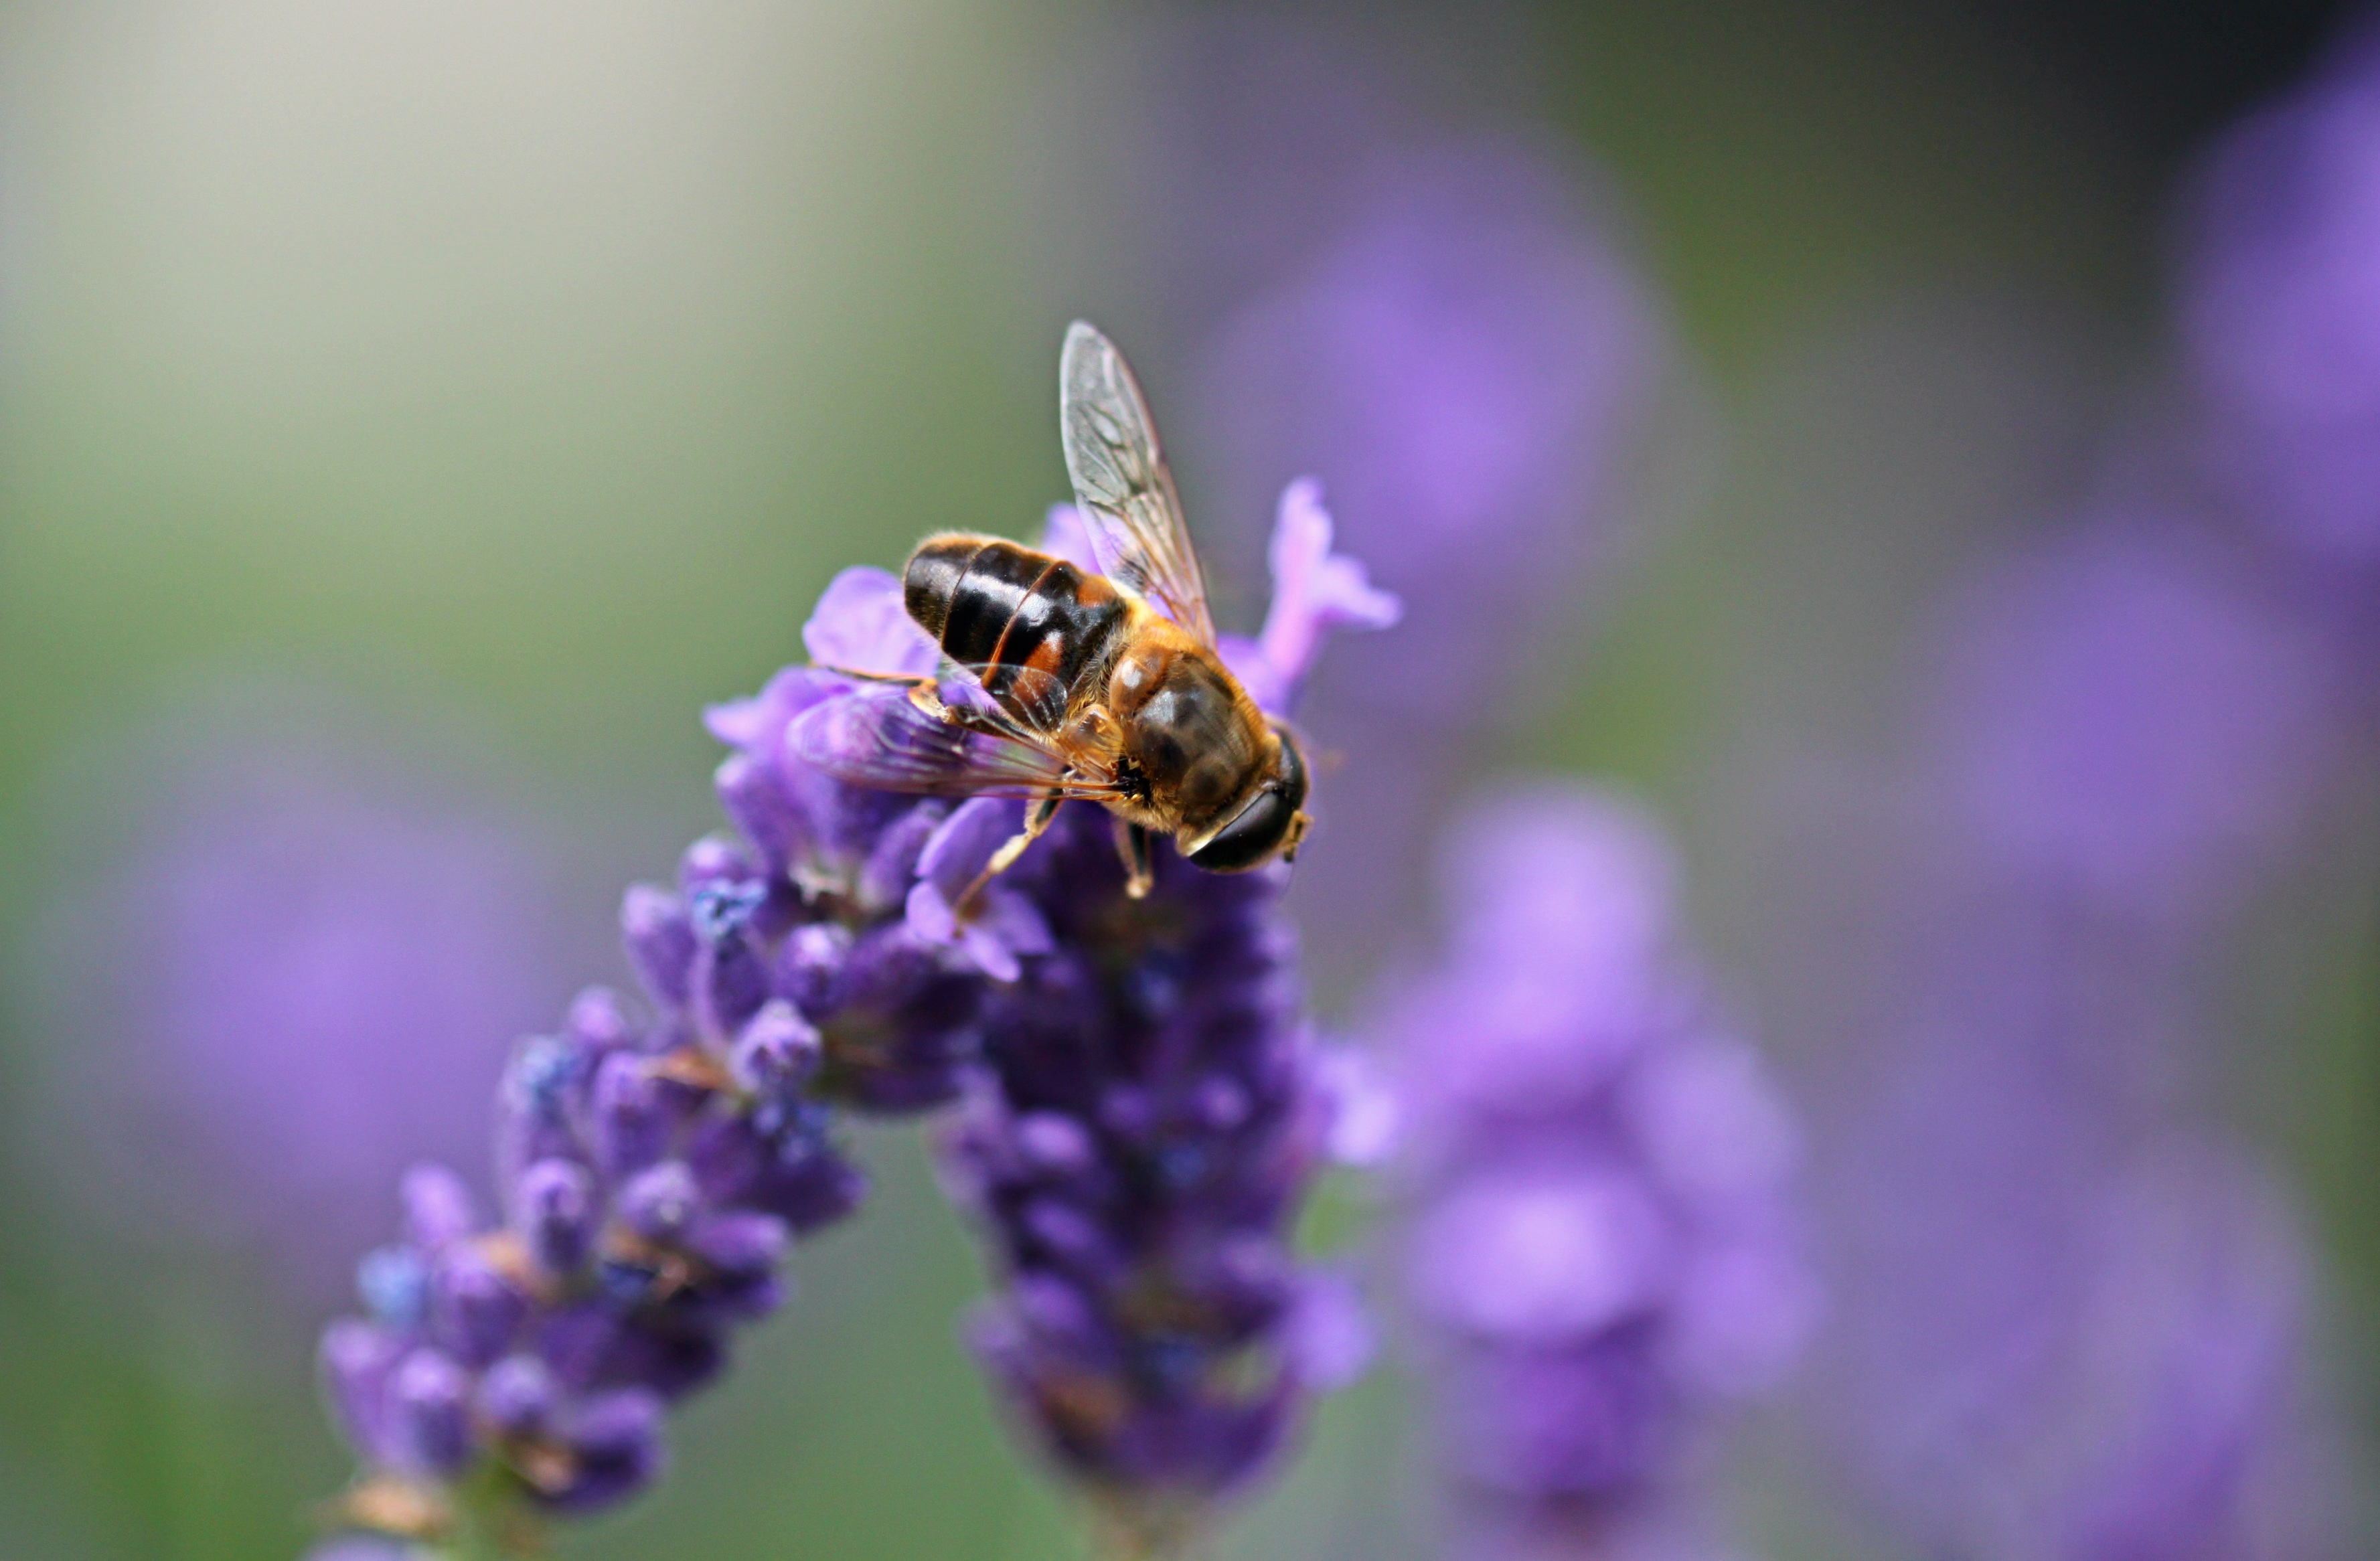 Nature Wallpaper Hd And Car Bees On Purple Flower 183 Free Stock Photo